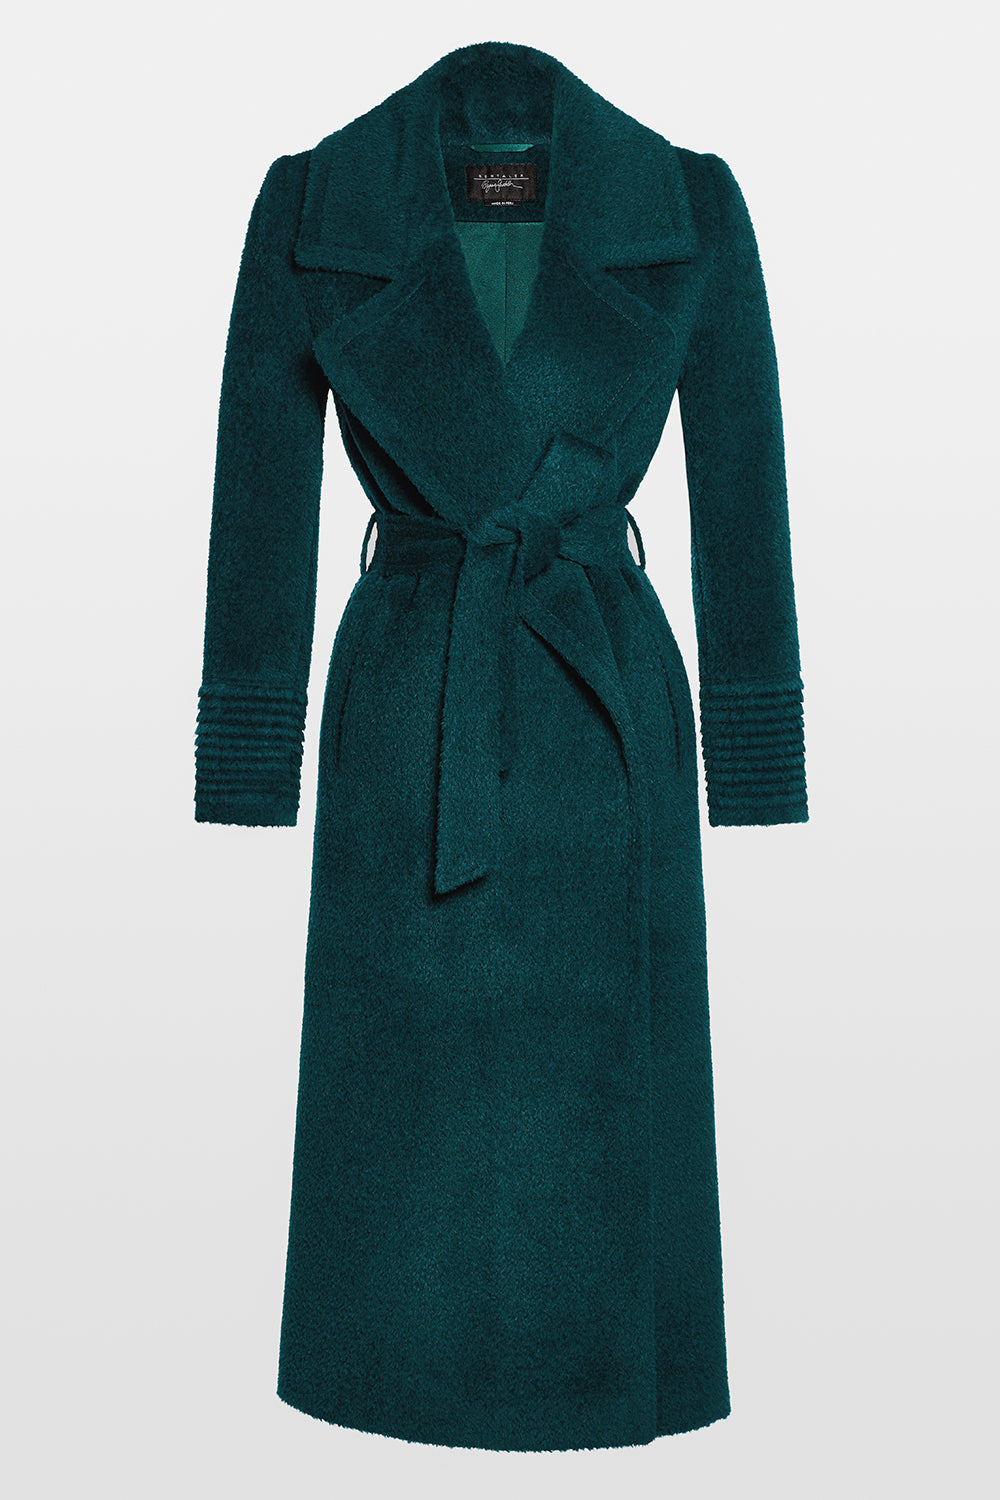 Sentaler Bouclé Alpaca Long Notched Collar Wrap Coat featured in Bouclé Alpaca and available in Emerald Green. Seen off model.